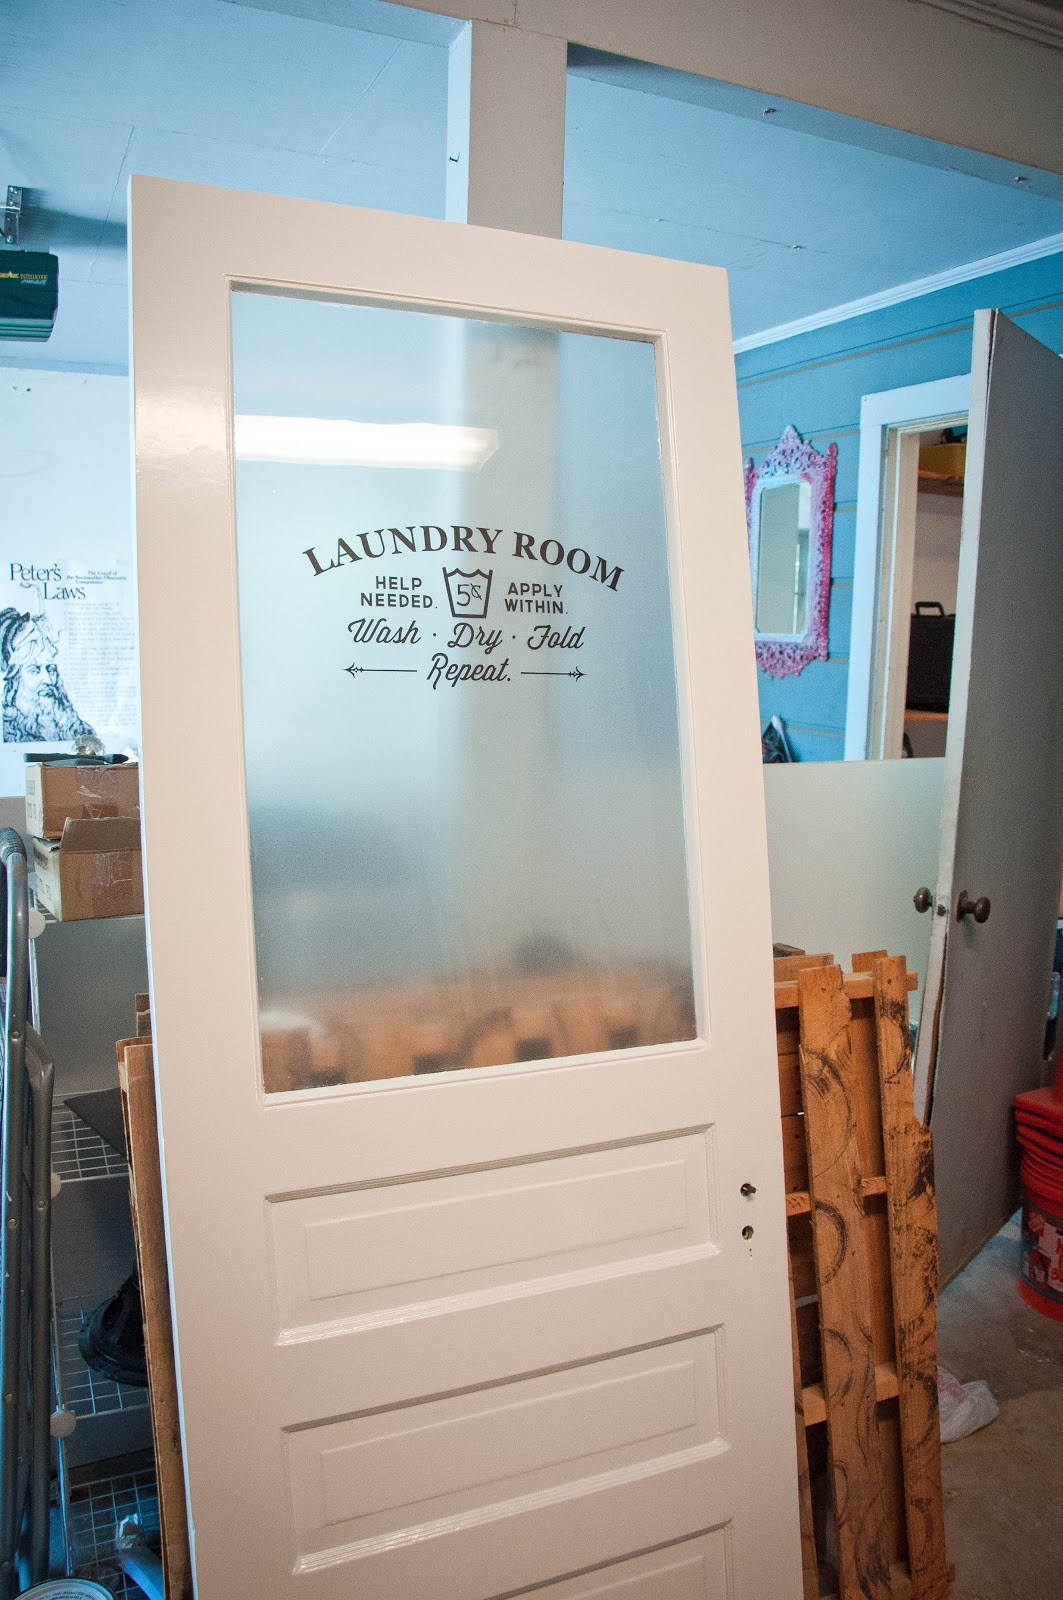 Best ideas about Laundry Room Doors . Save or Pin Laundry Room Door Part 2 Now.